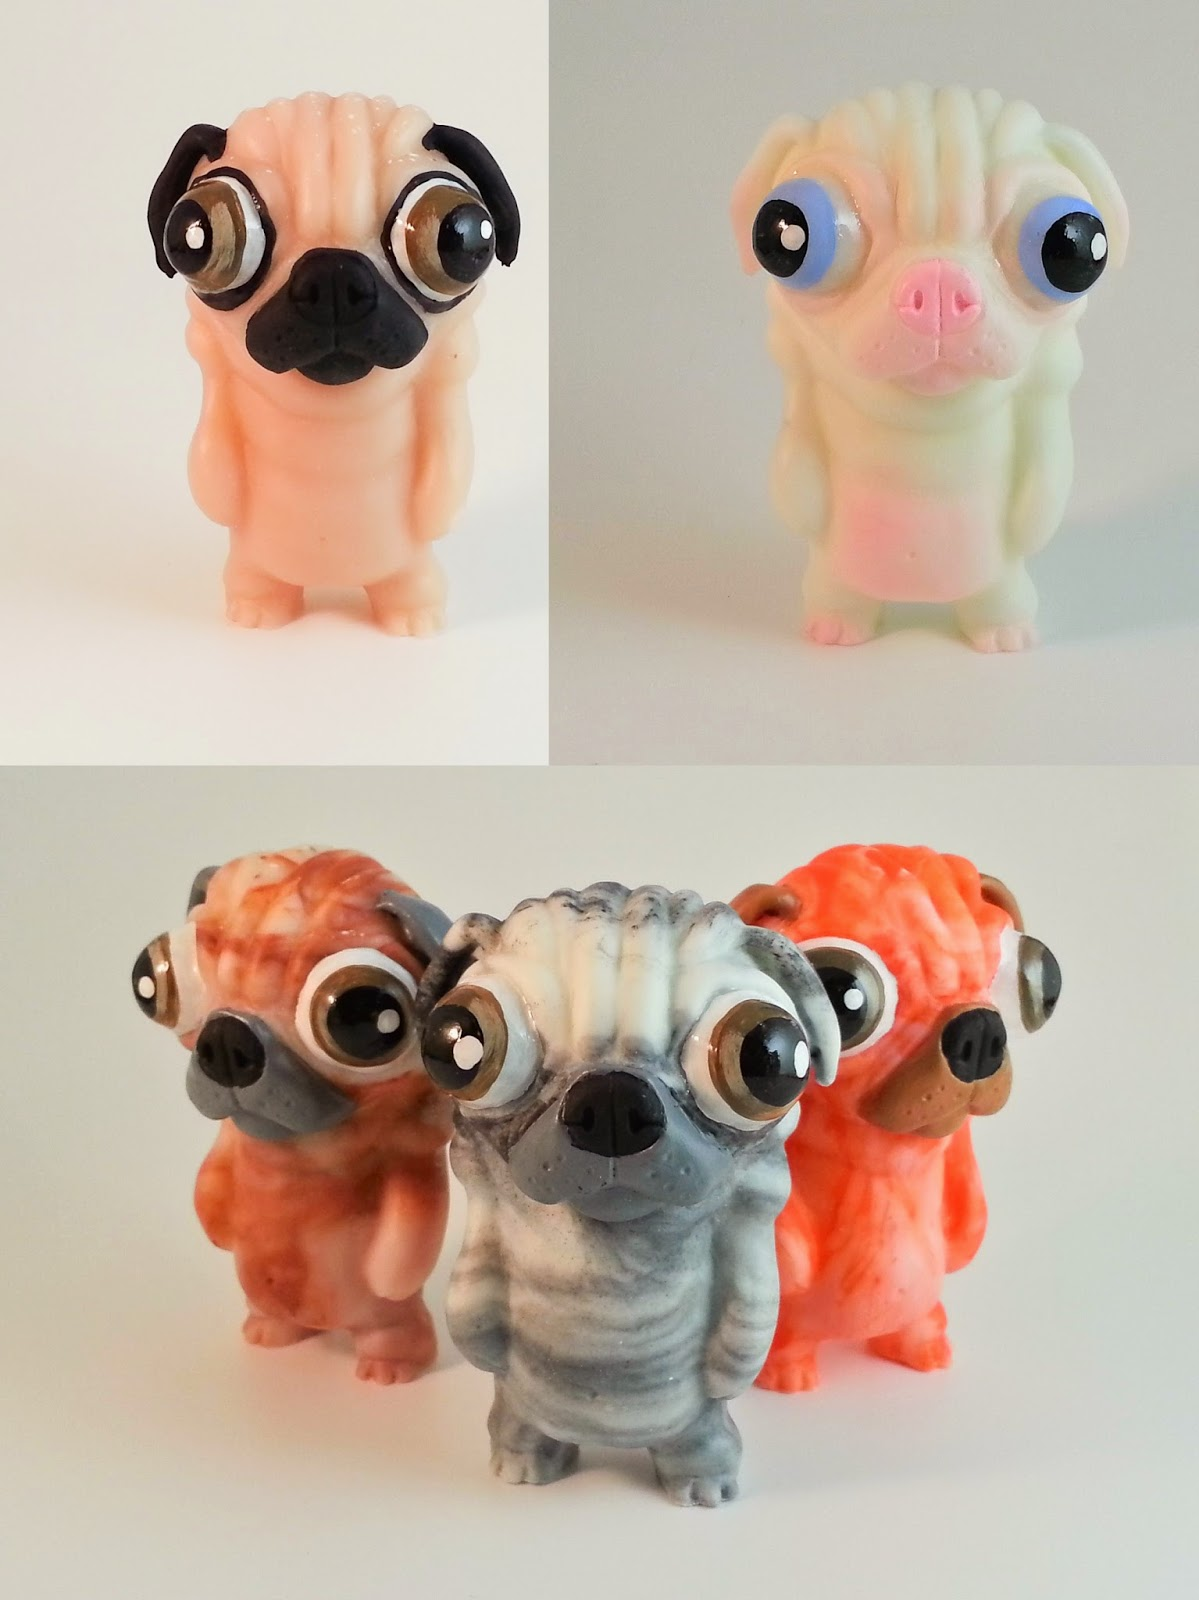 Puggo Resin Figure by Motorbot - Standard Edition, Albino Edition & Blind Bag Edition